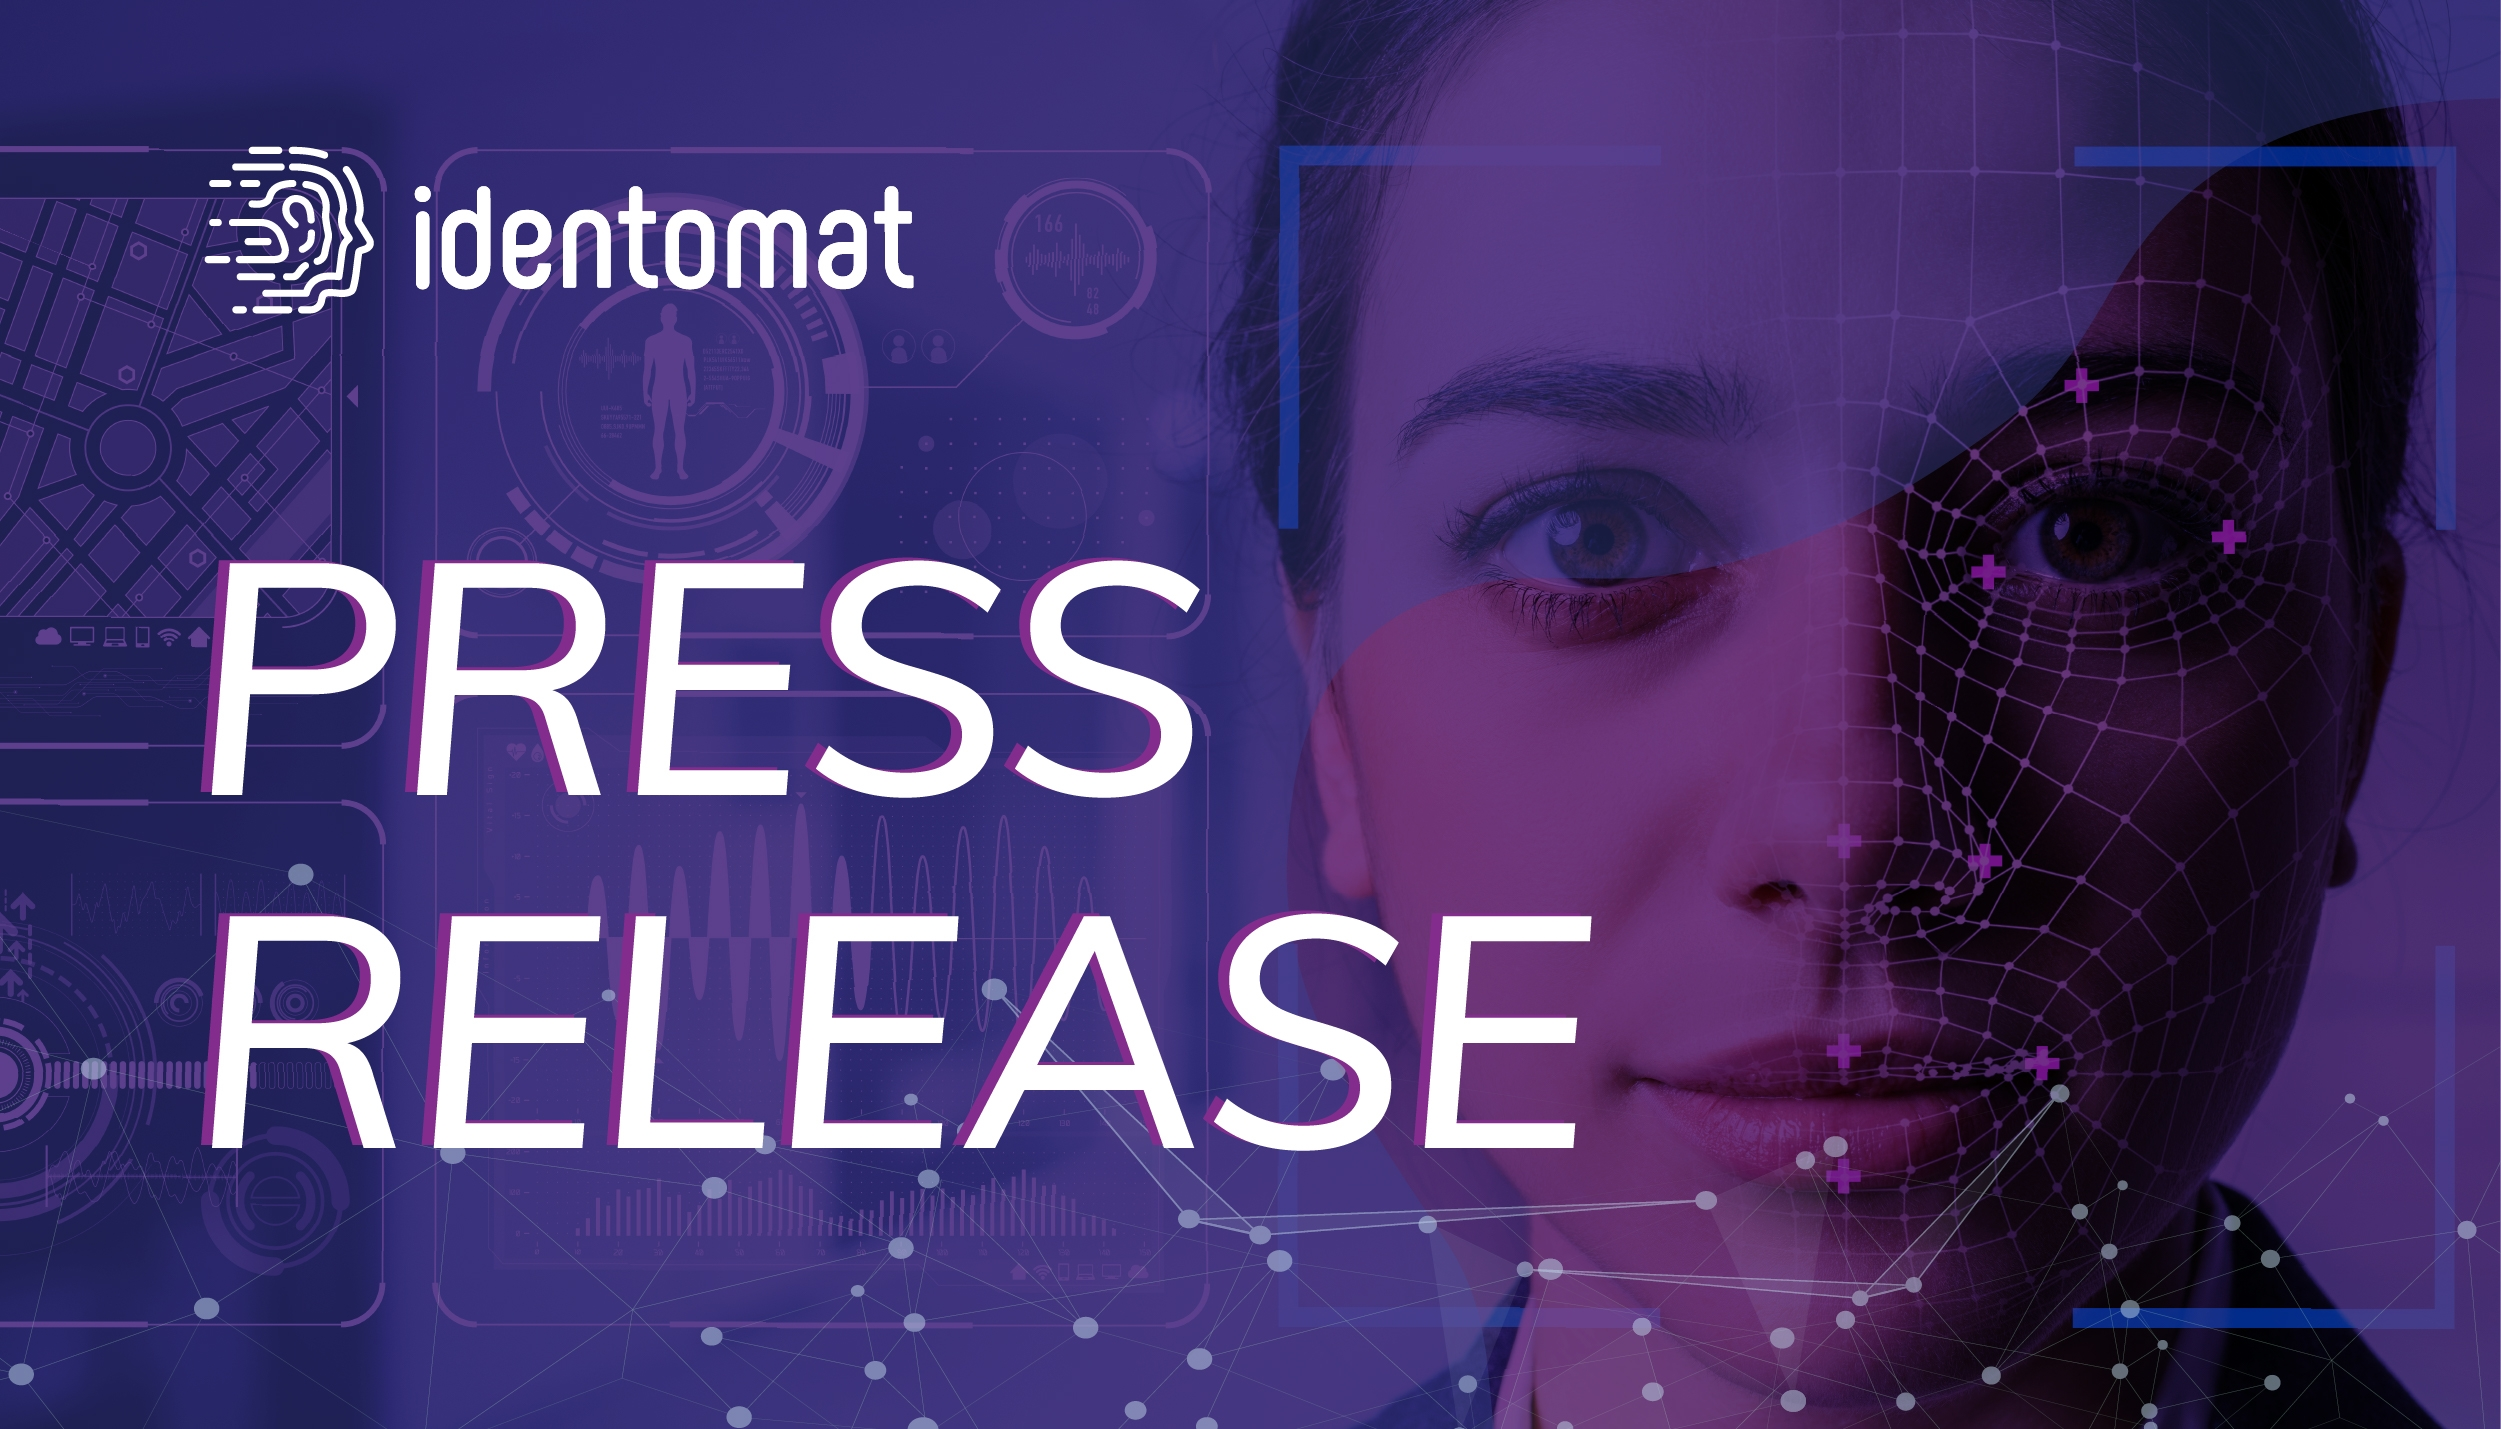 PRESS RELEASE: Identomat Acknowledged as Fully Compliant with Georgian Law on Data Protection